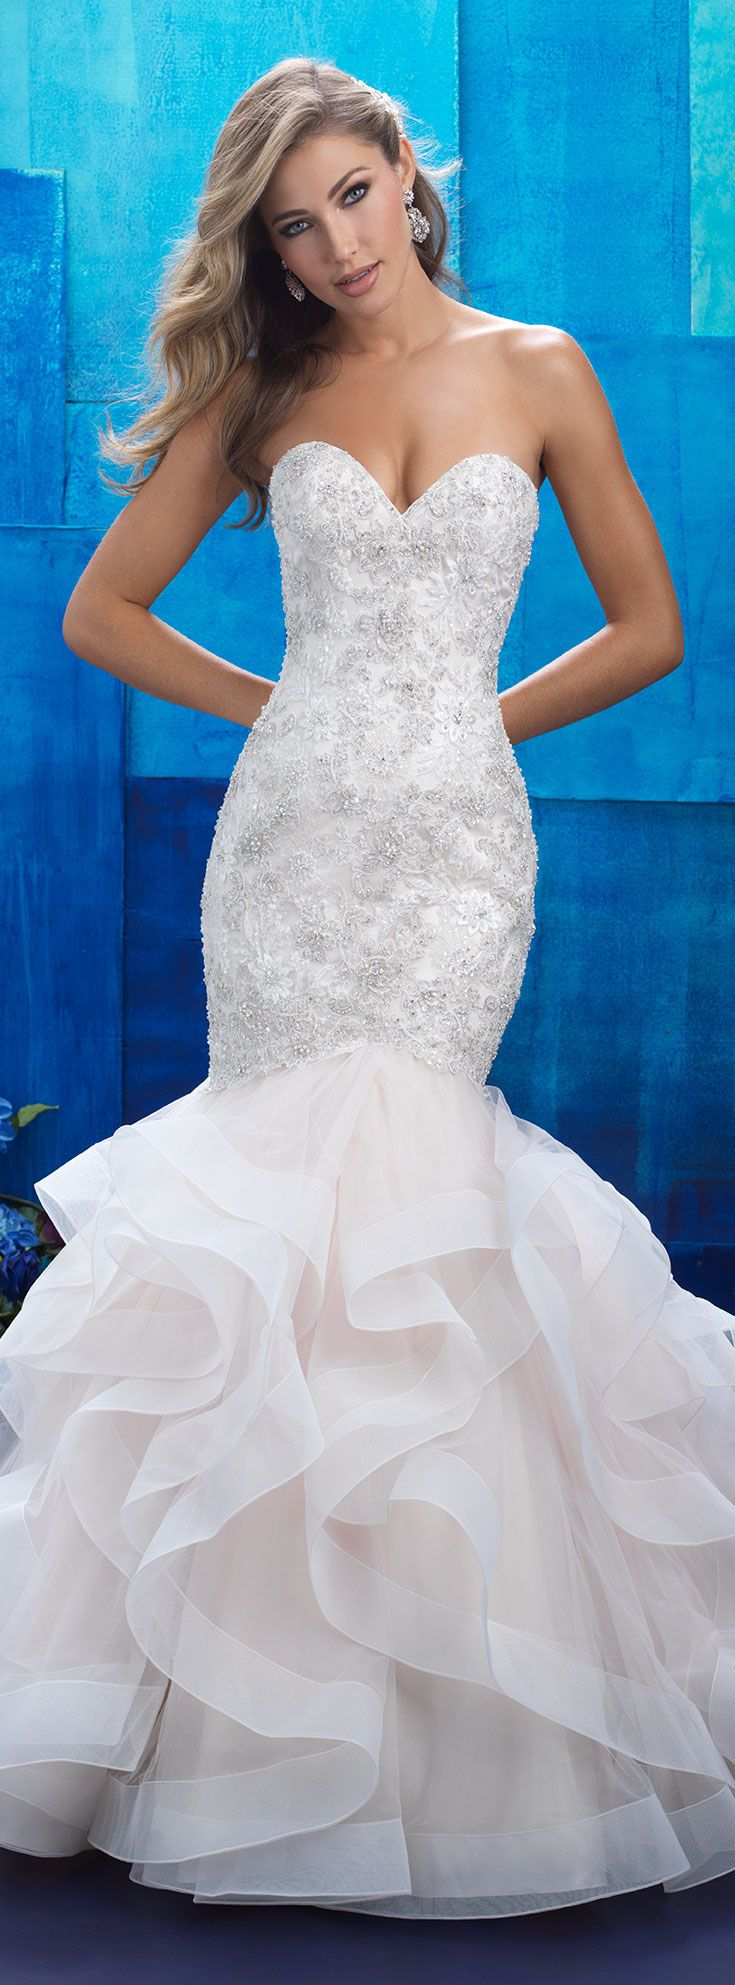 17 Best Ideas About Mermaid Dresses On Pinterest